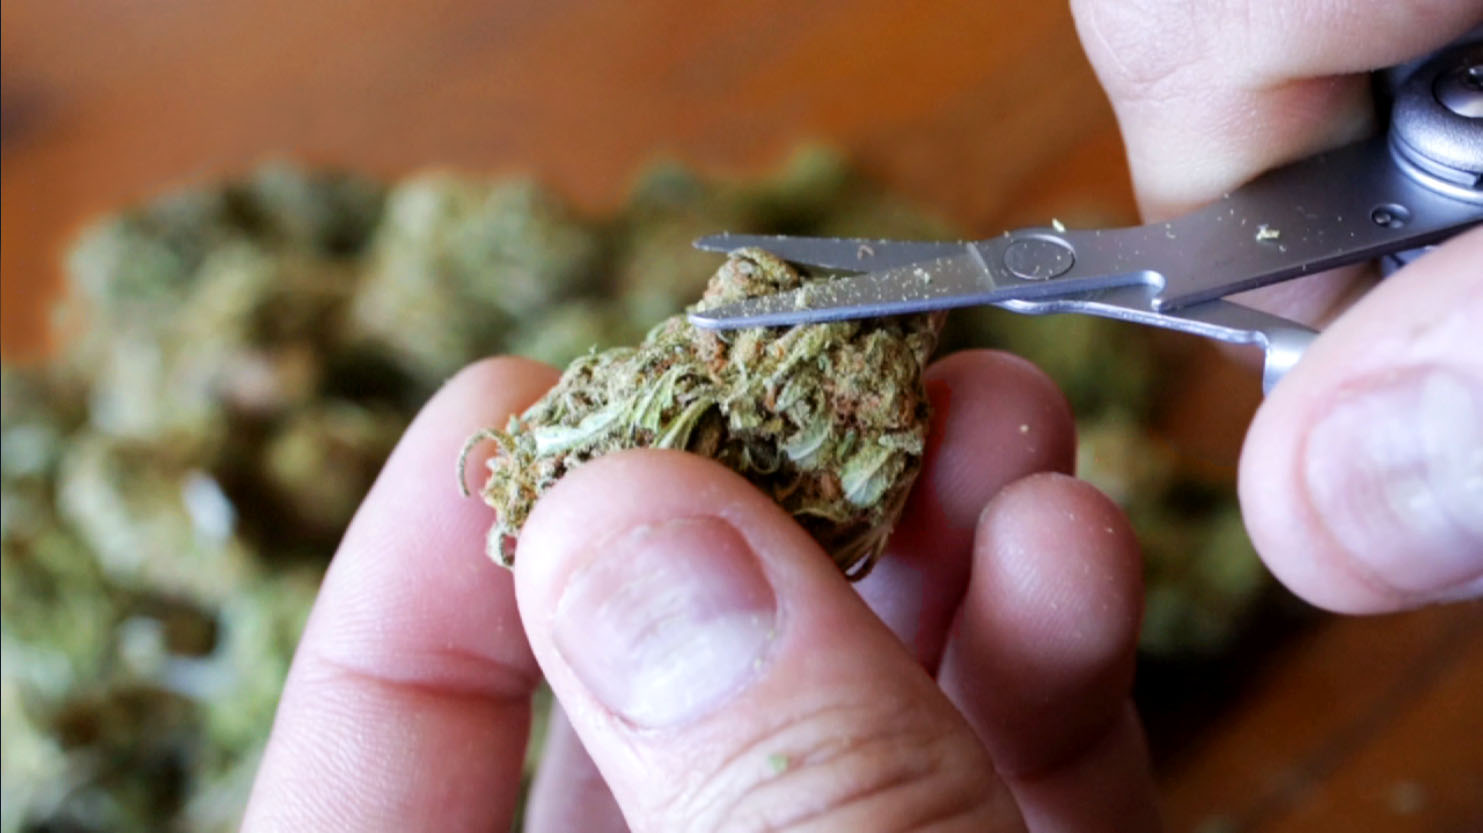 Special Coverage: Youth And The Marijuana Industry